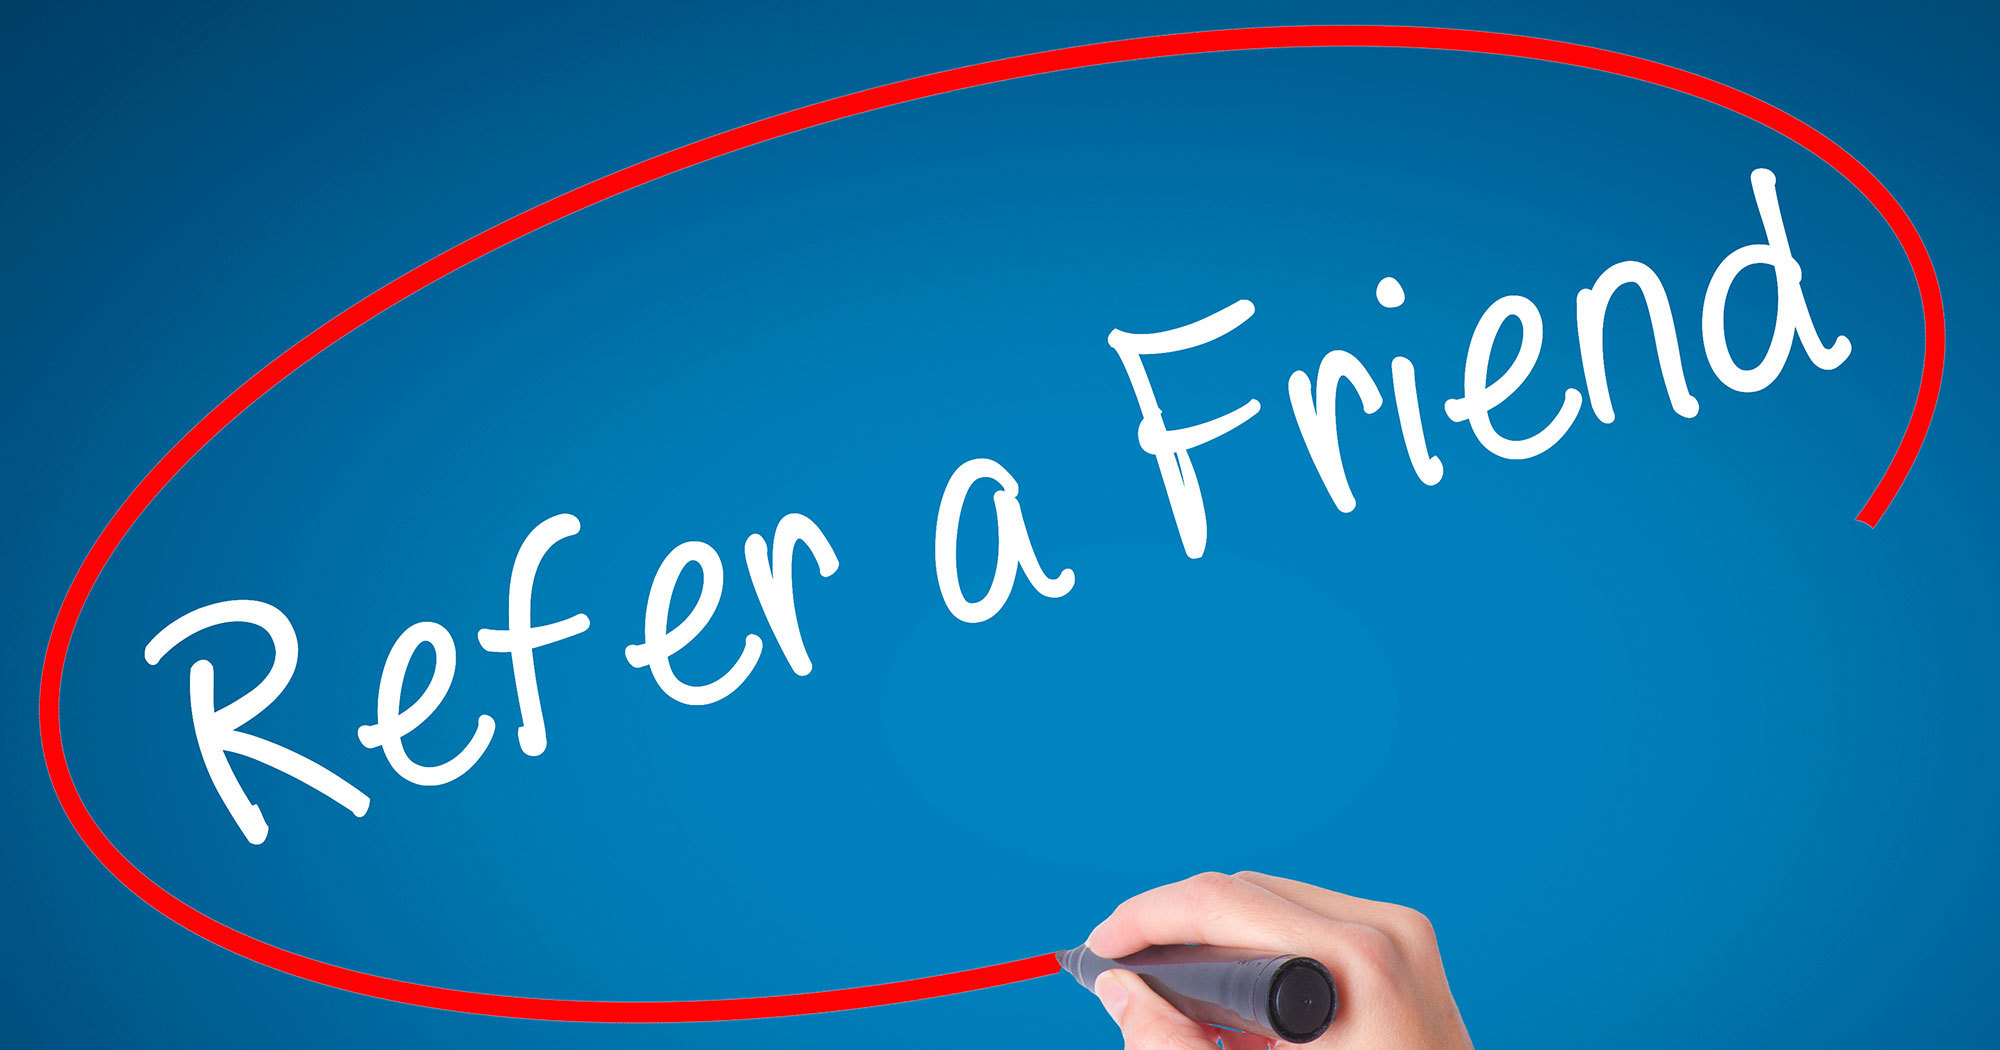 refer a friend for engineering jobs, maintenance jobs